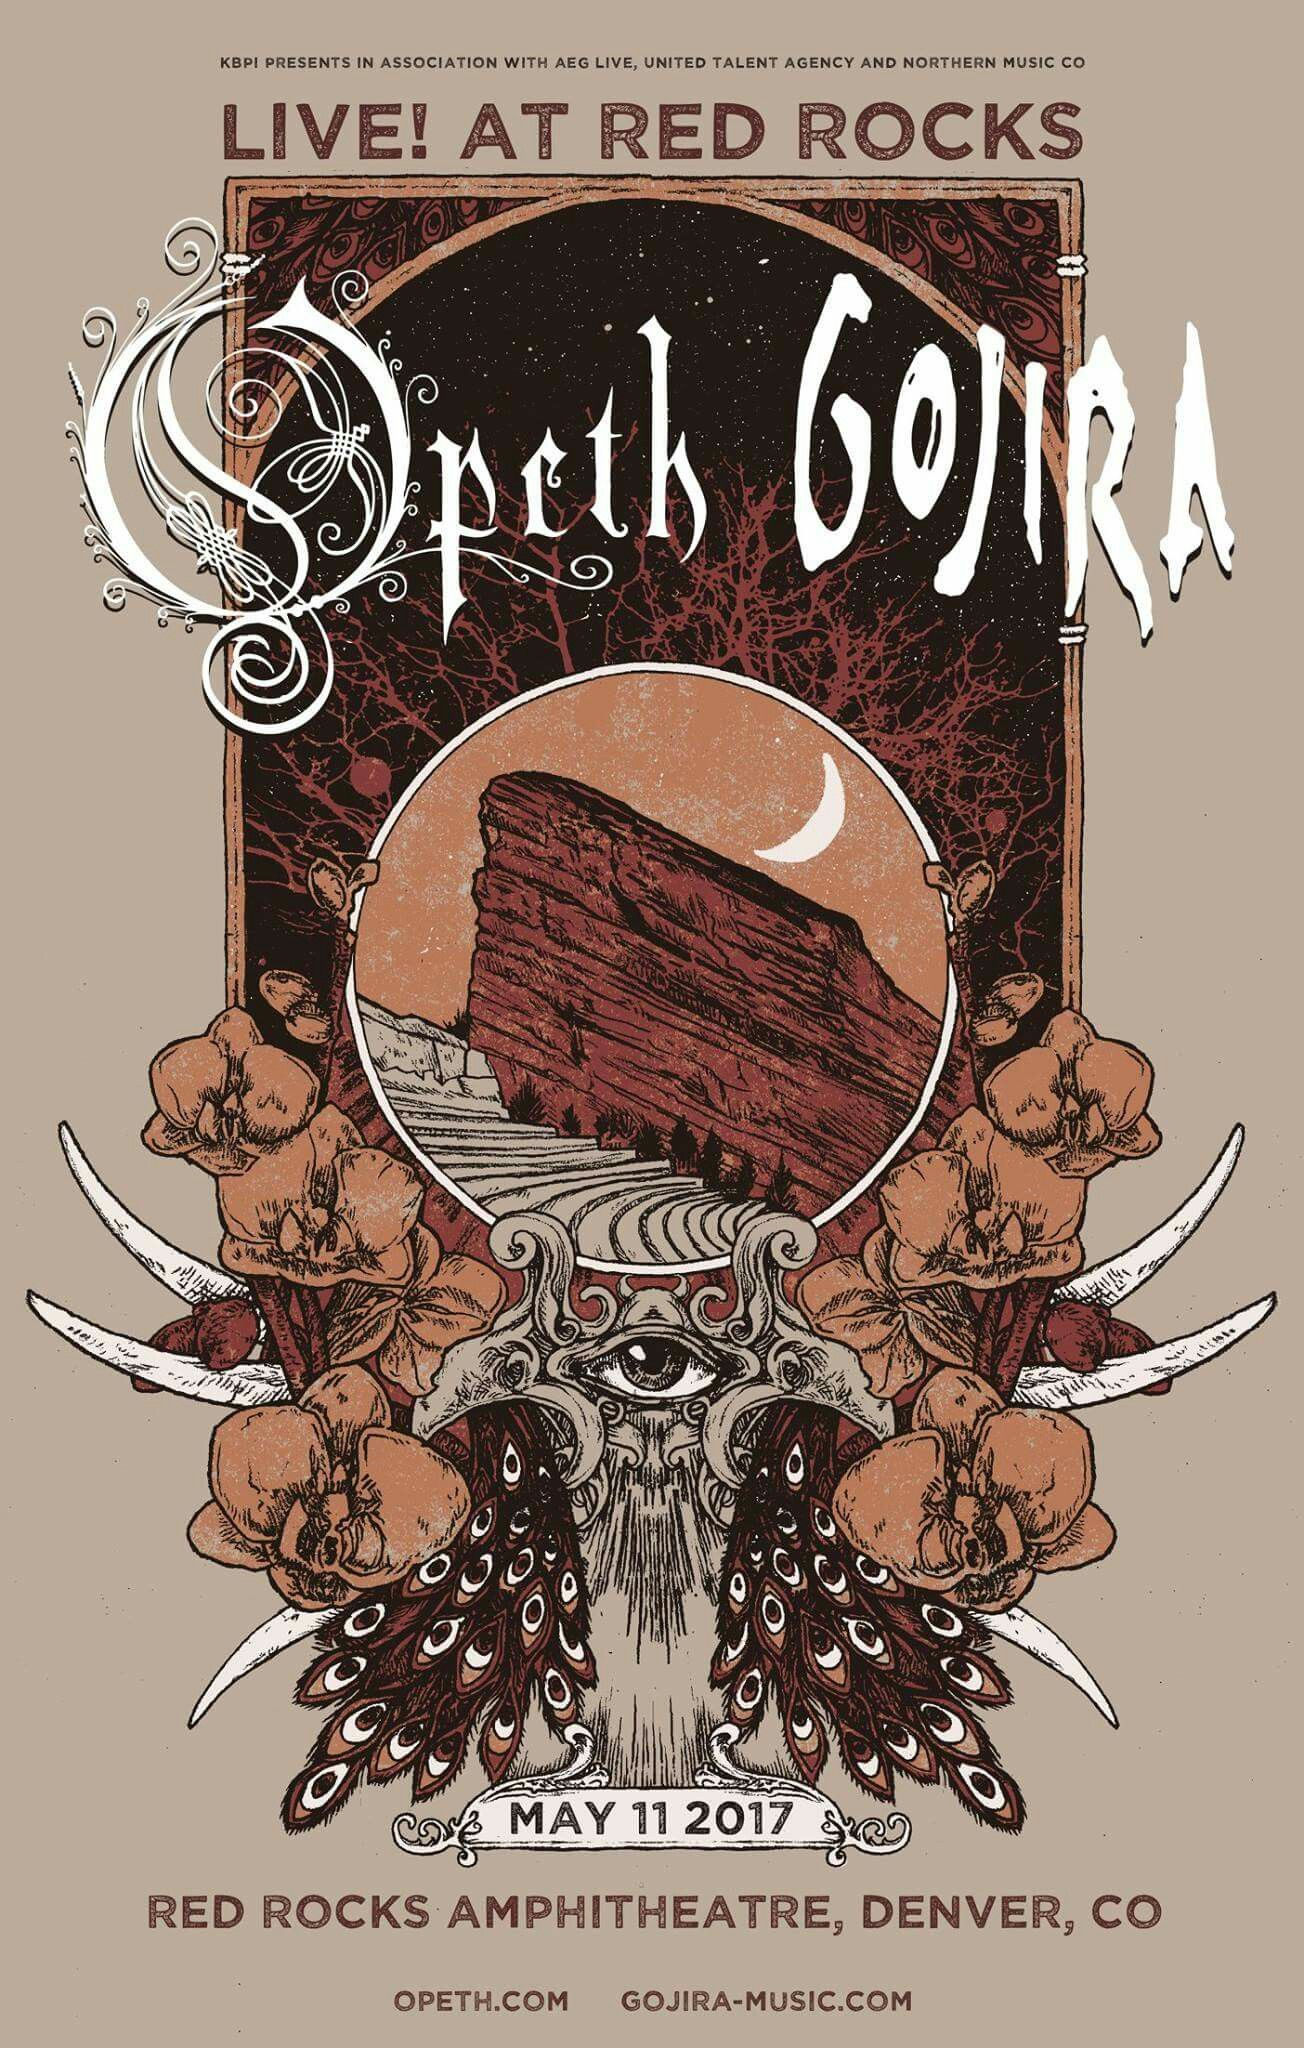 Opeth Gojira Band Posters Rock N Roll Art Music Concert Posters